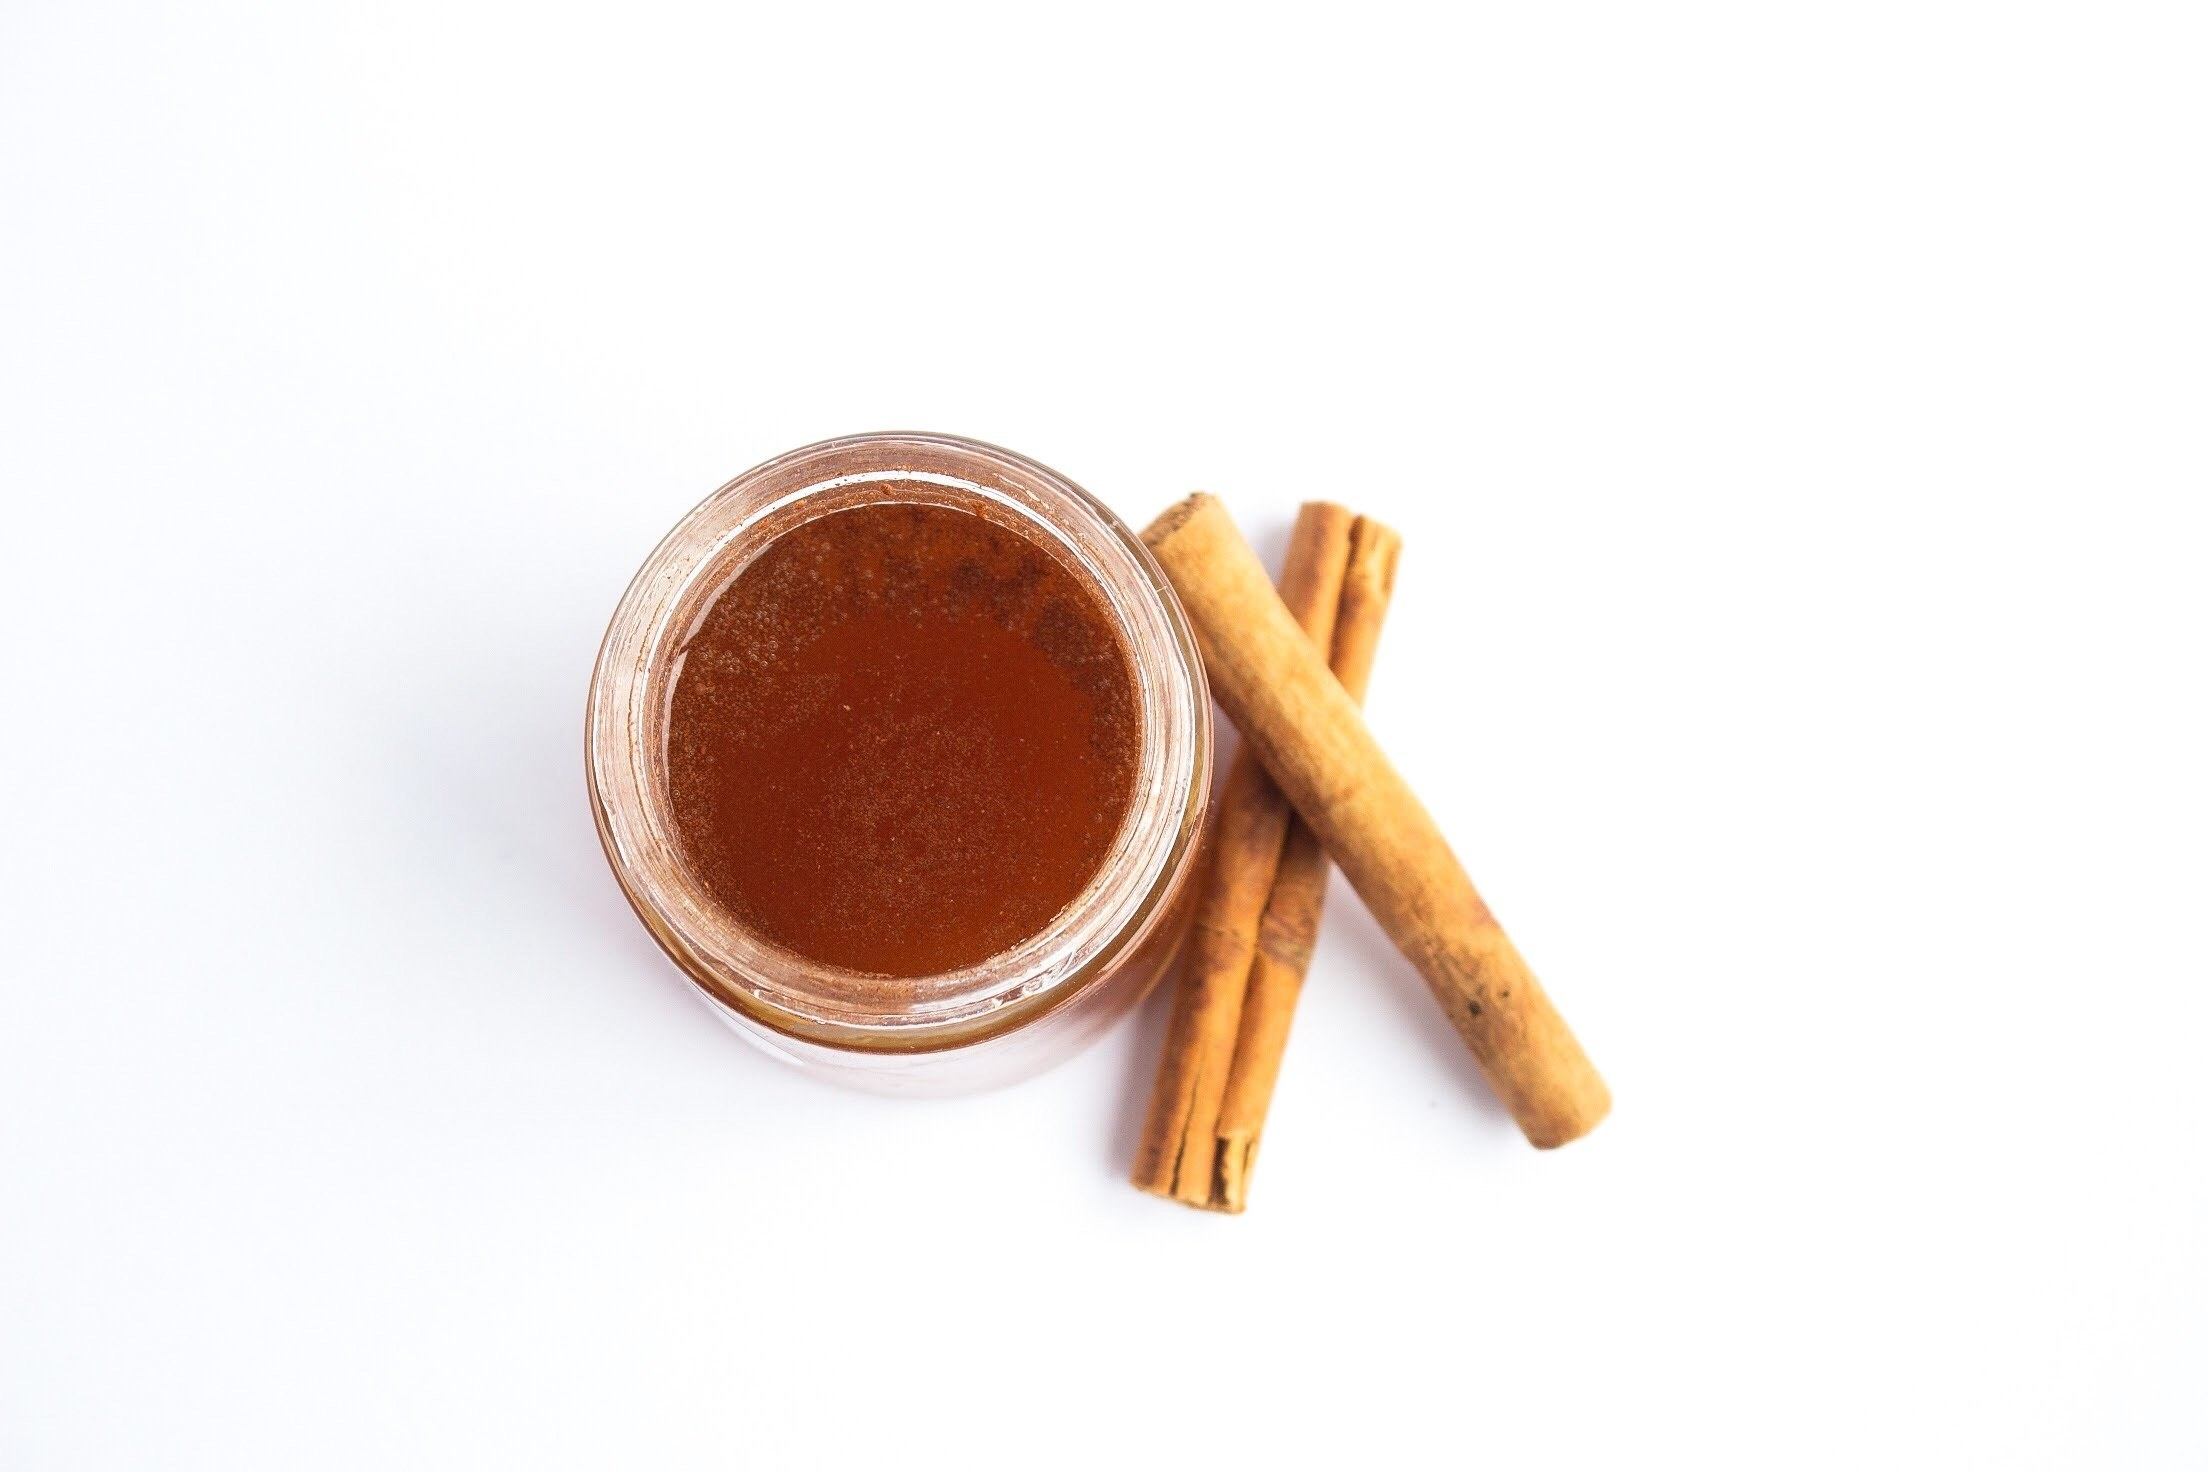 a jar of honey with cinnamon sticks next to it